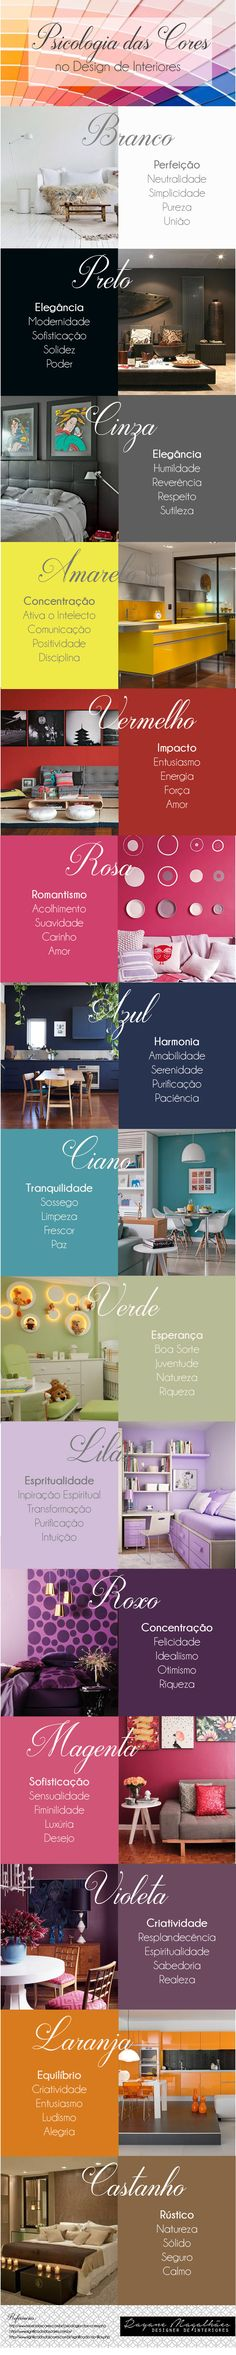 PSICOLOGIA DAS CORES Home Staging, Art Decor, Diy Home Decor, Room Decor, Decor Ideas, Web Design, House Design, Color Psychology, Interior Decorating